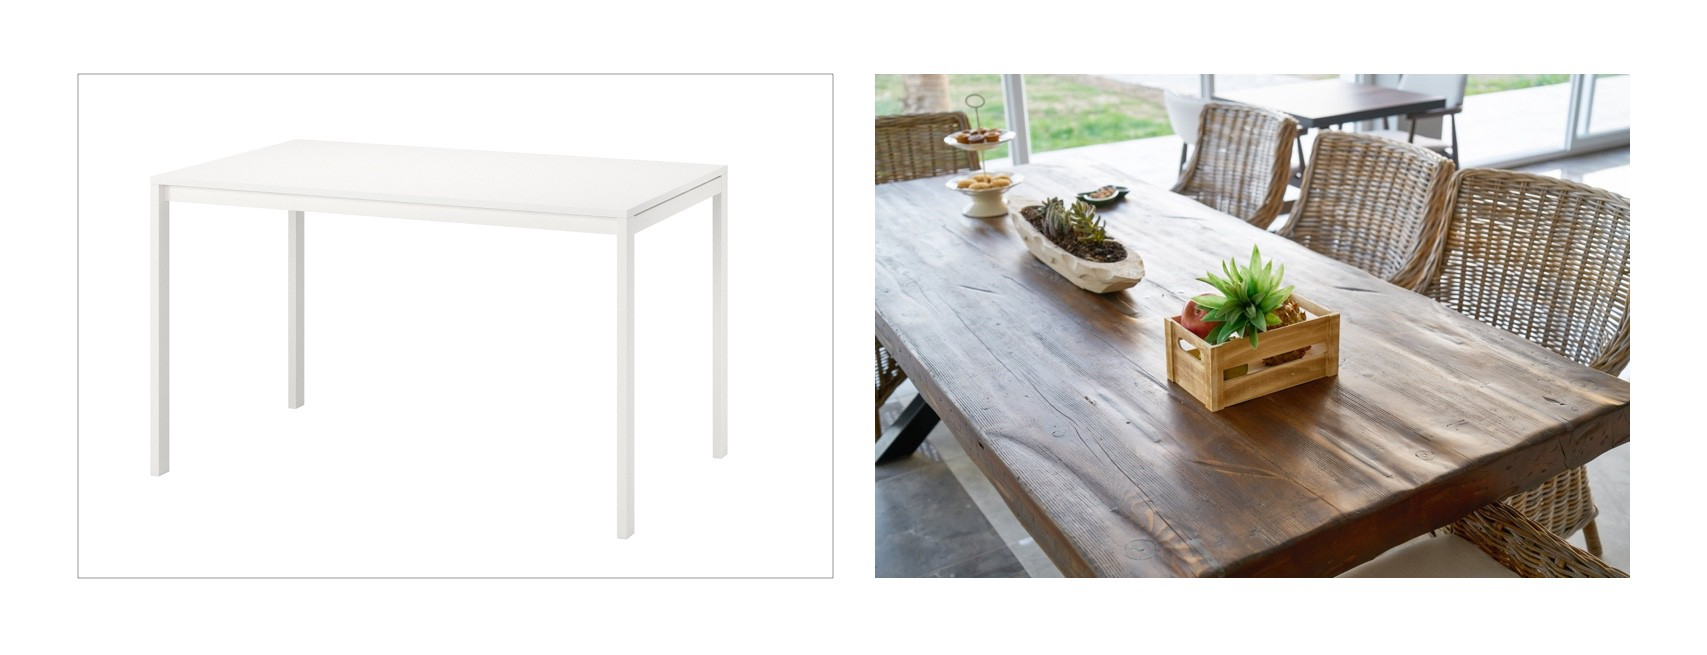 ikea table vs real wooden table